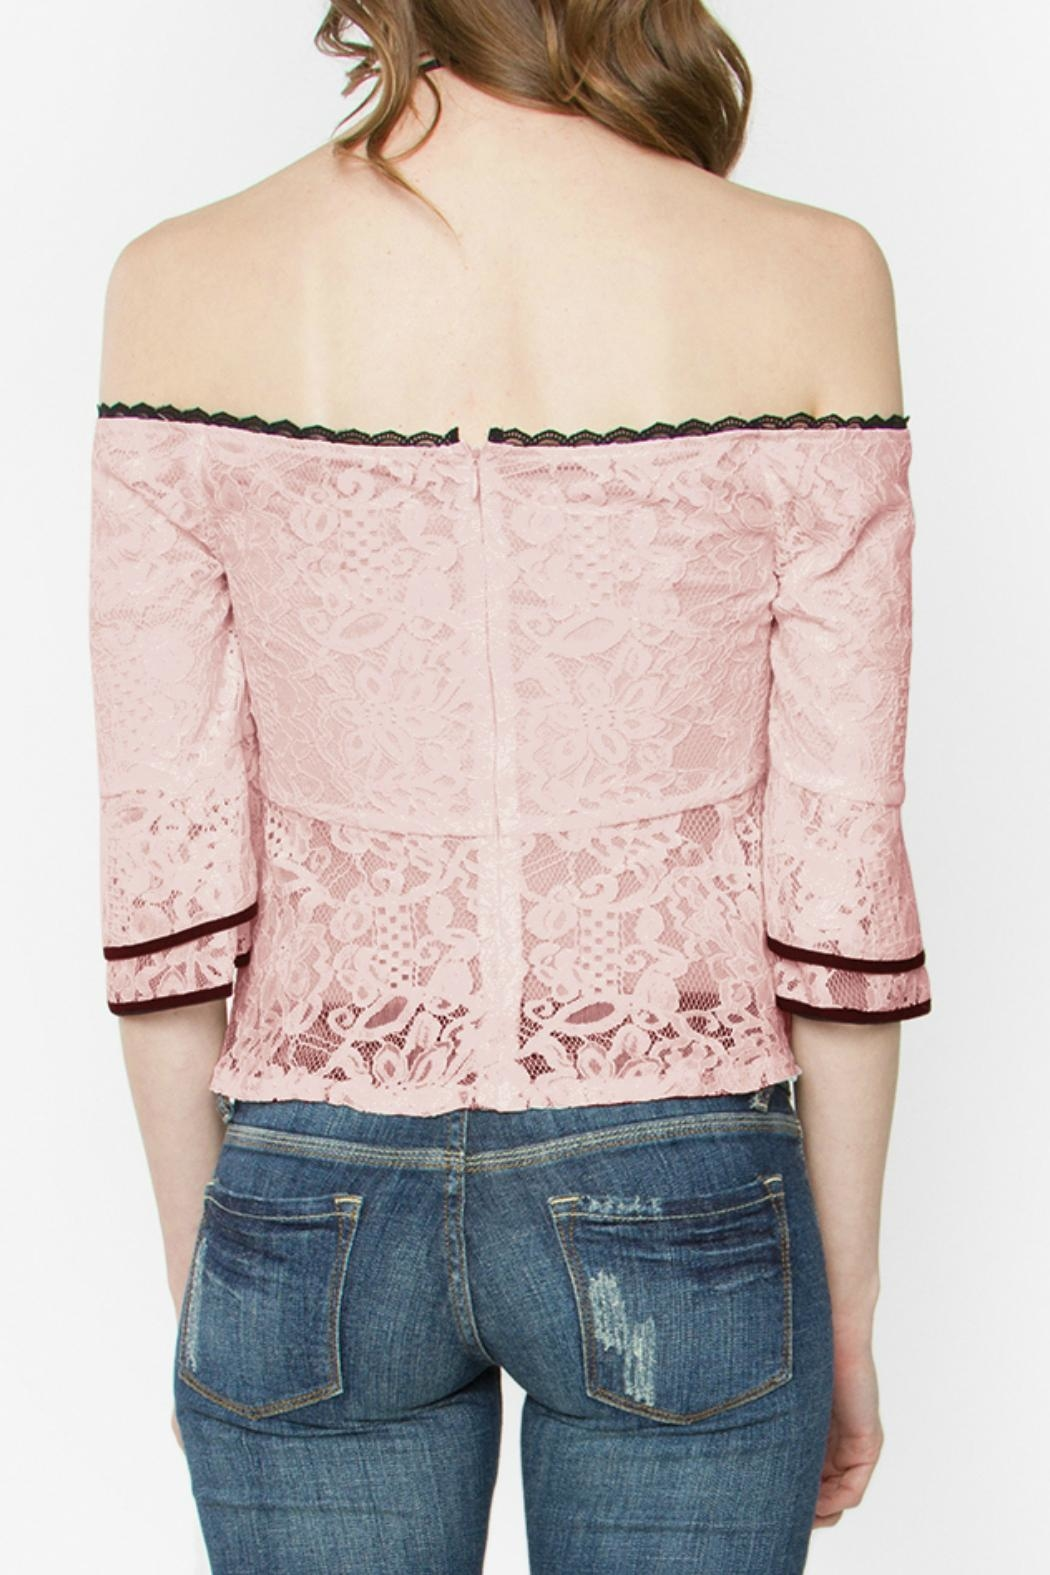 Sugar Lips Lace Peplum Top - Side Cropped Image